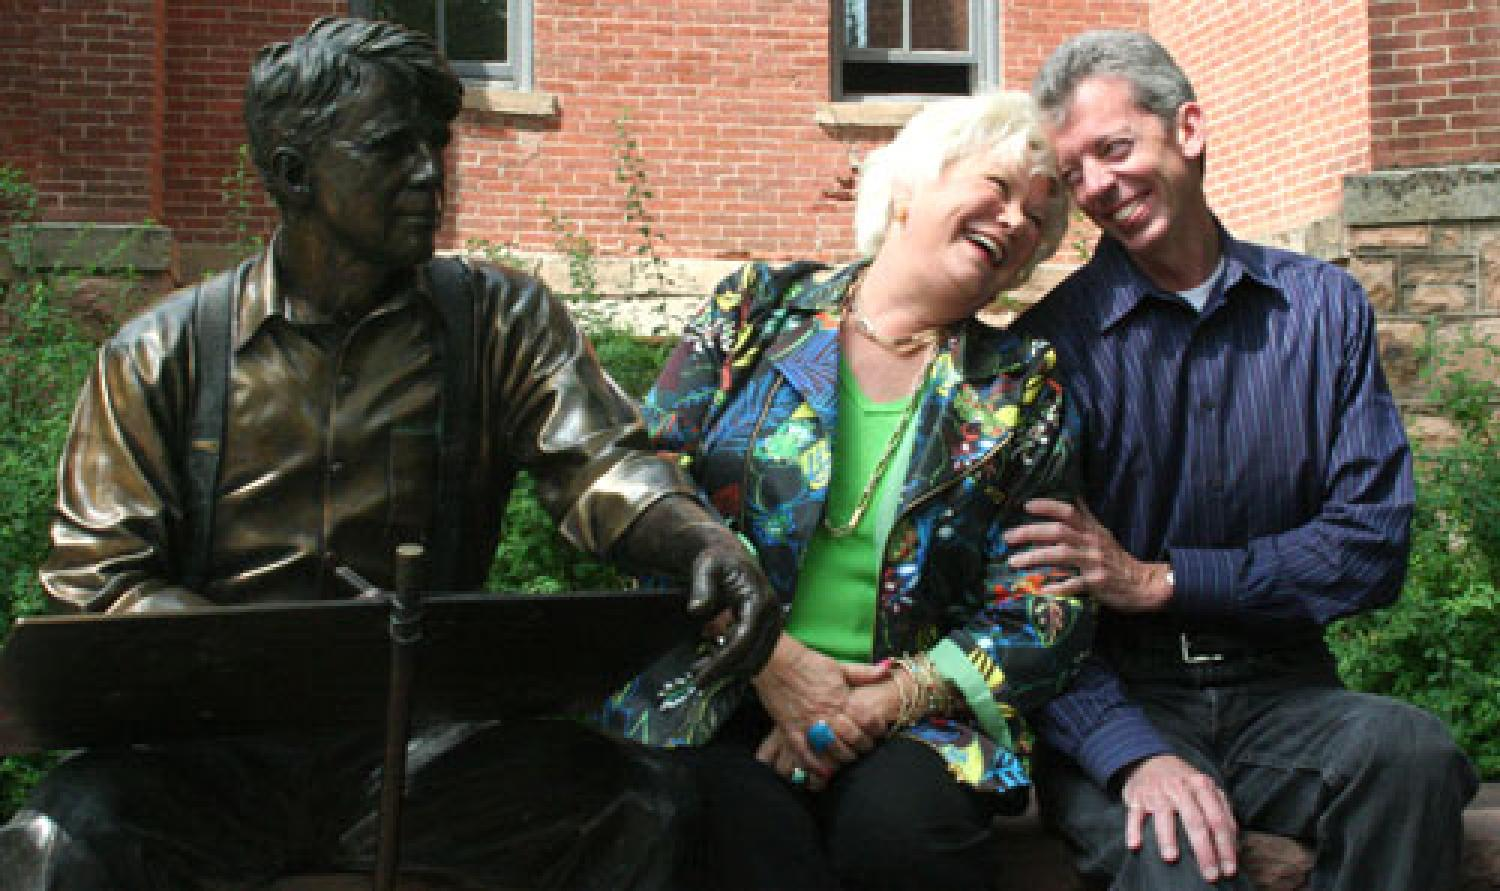 Roe Green and Bud Coleman share a laugh next to a statue of Robert Frost on the CU-Boulder campus.